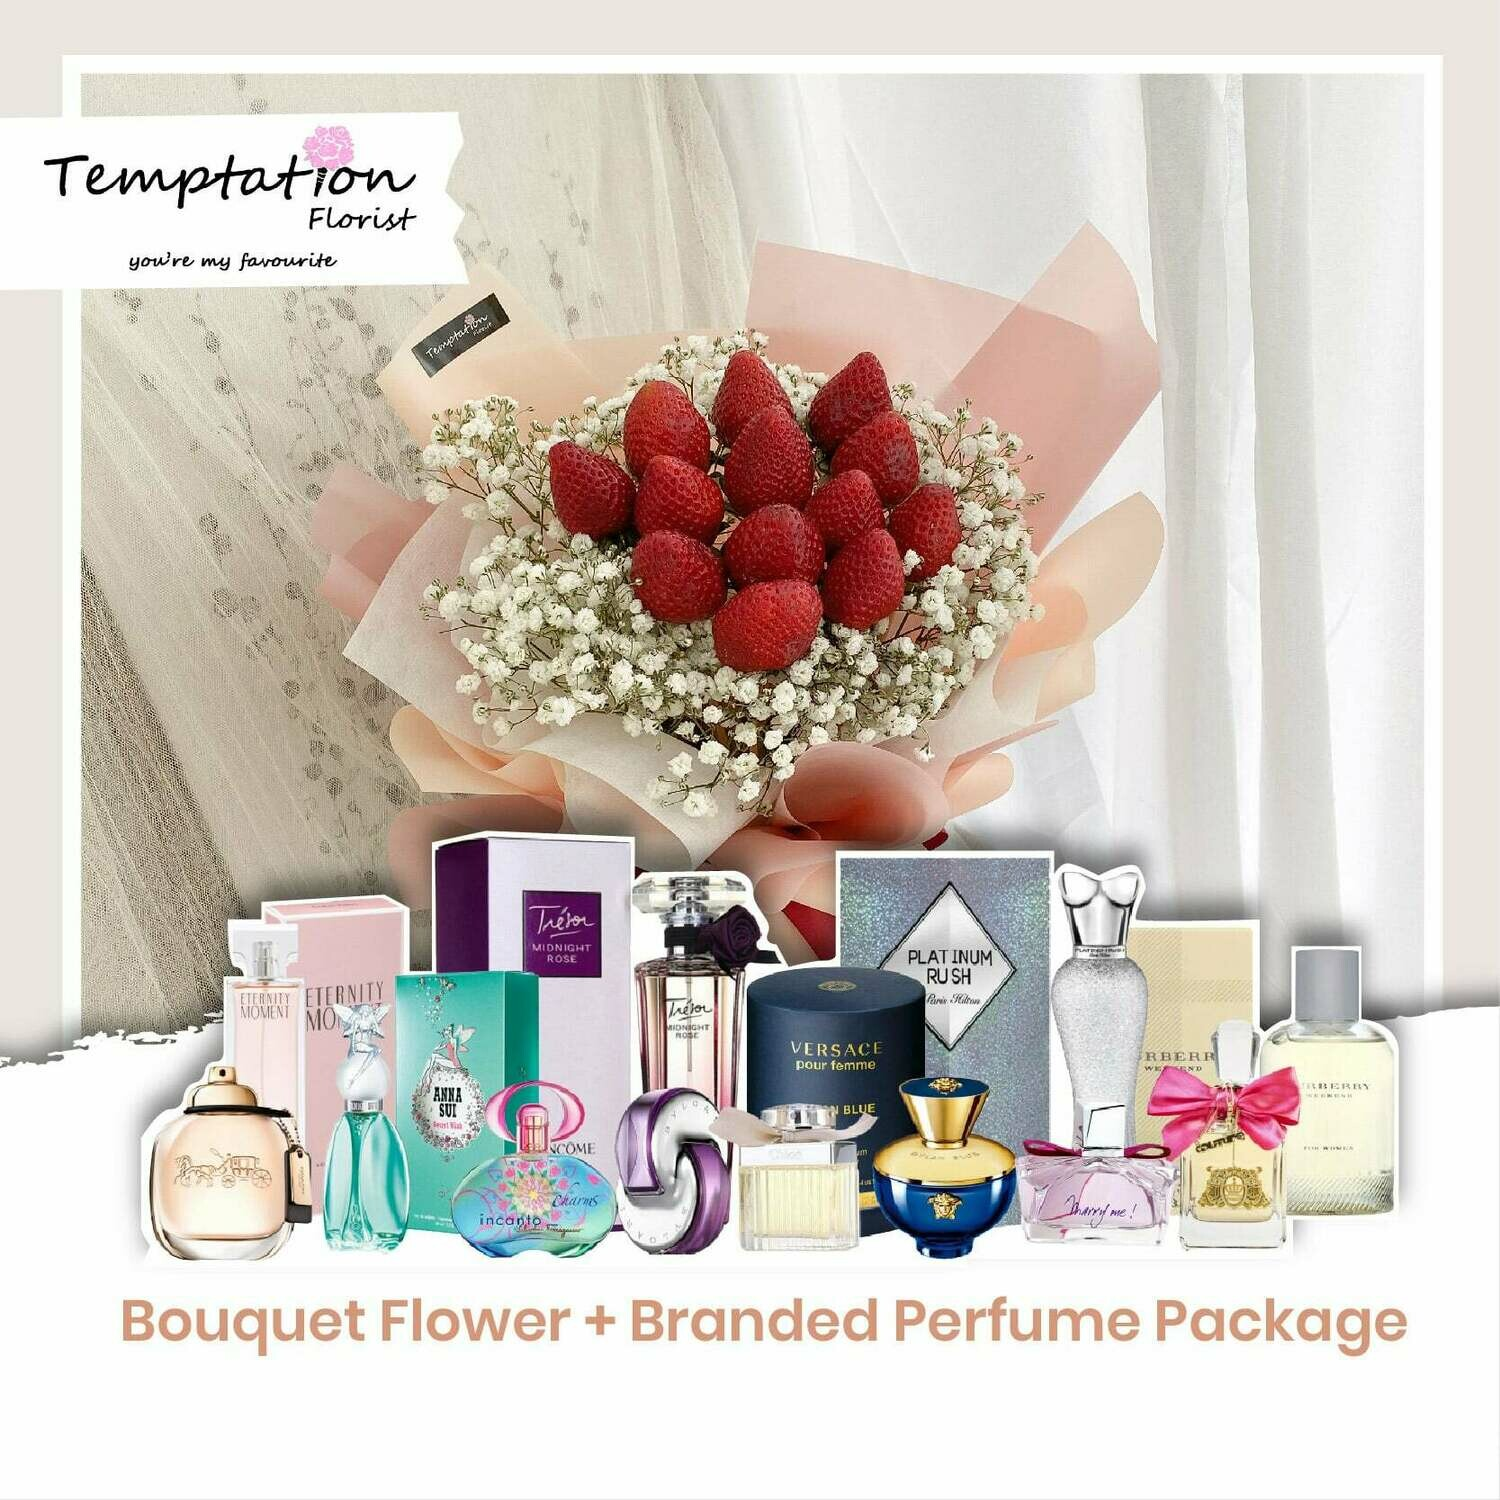 Temptation Florist Sweet Desire Bouquet+ Branded Perfume Package (Free Shipping! Only Deliver in Seremban)